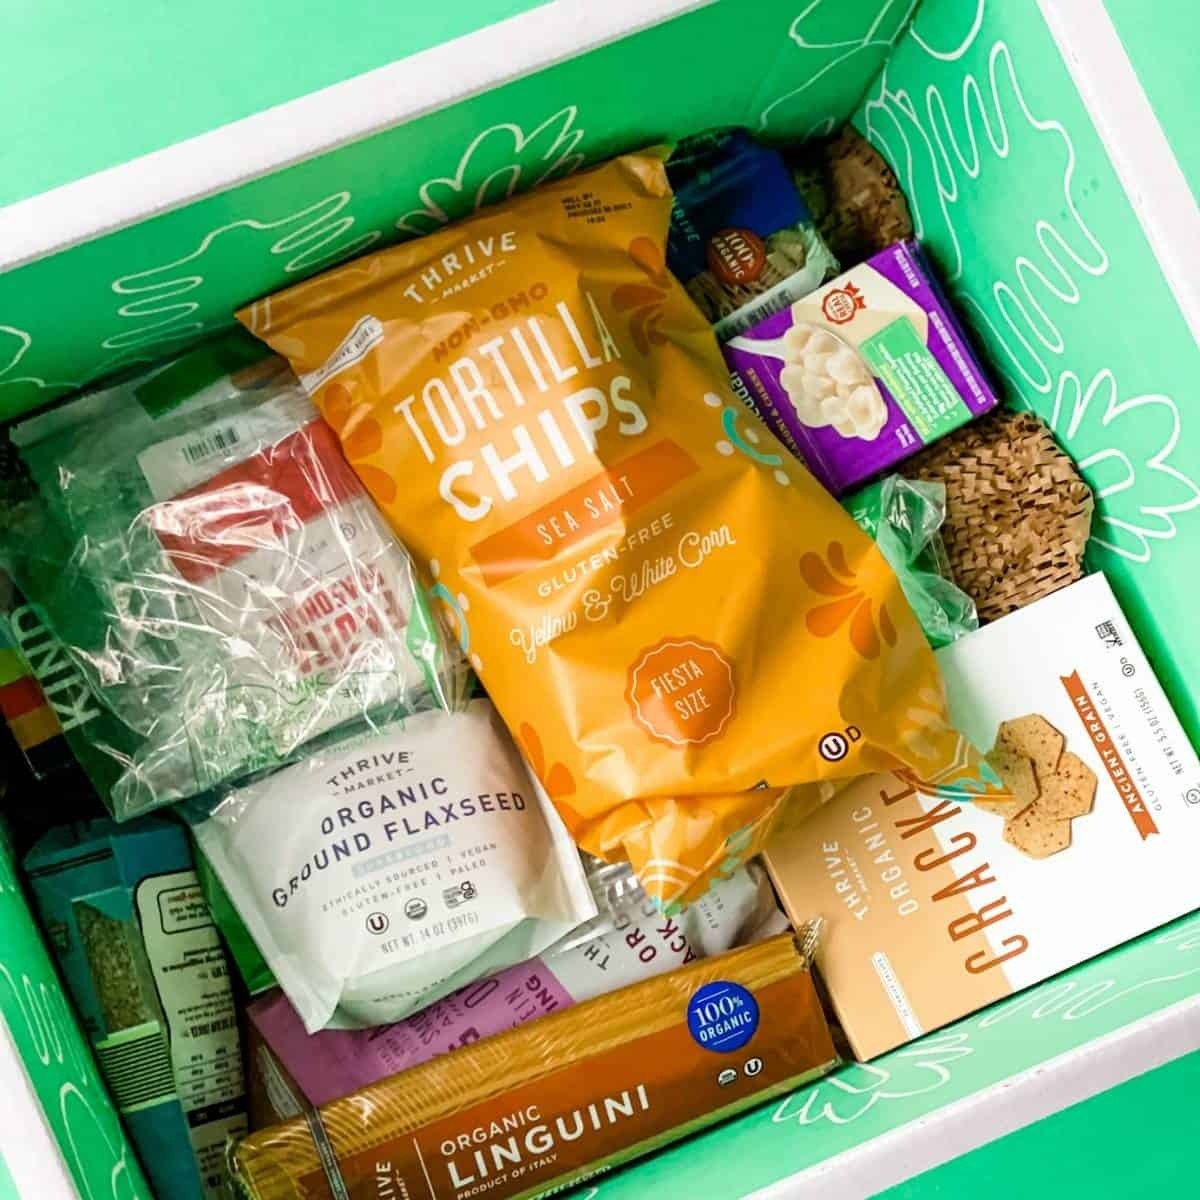 thrive market online grocery store to stock up on healthy pantry items.